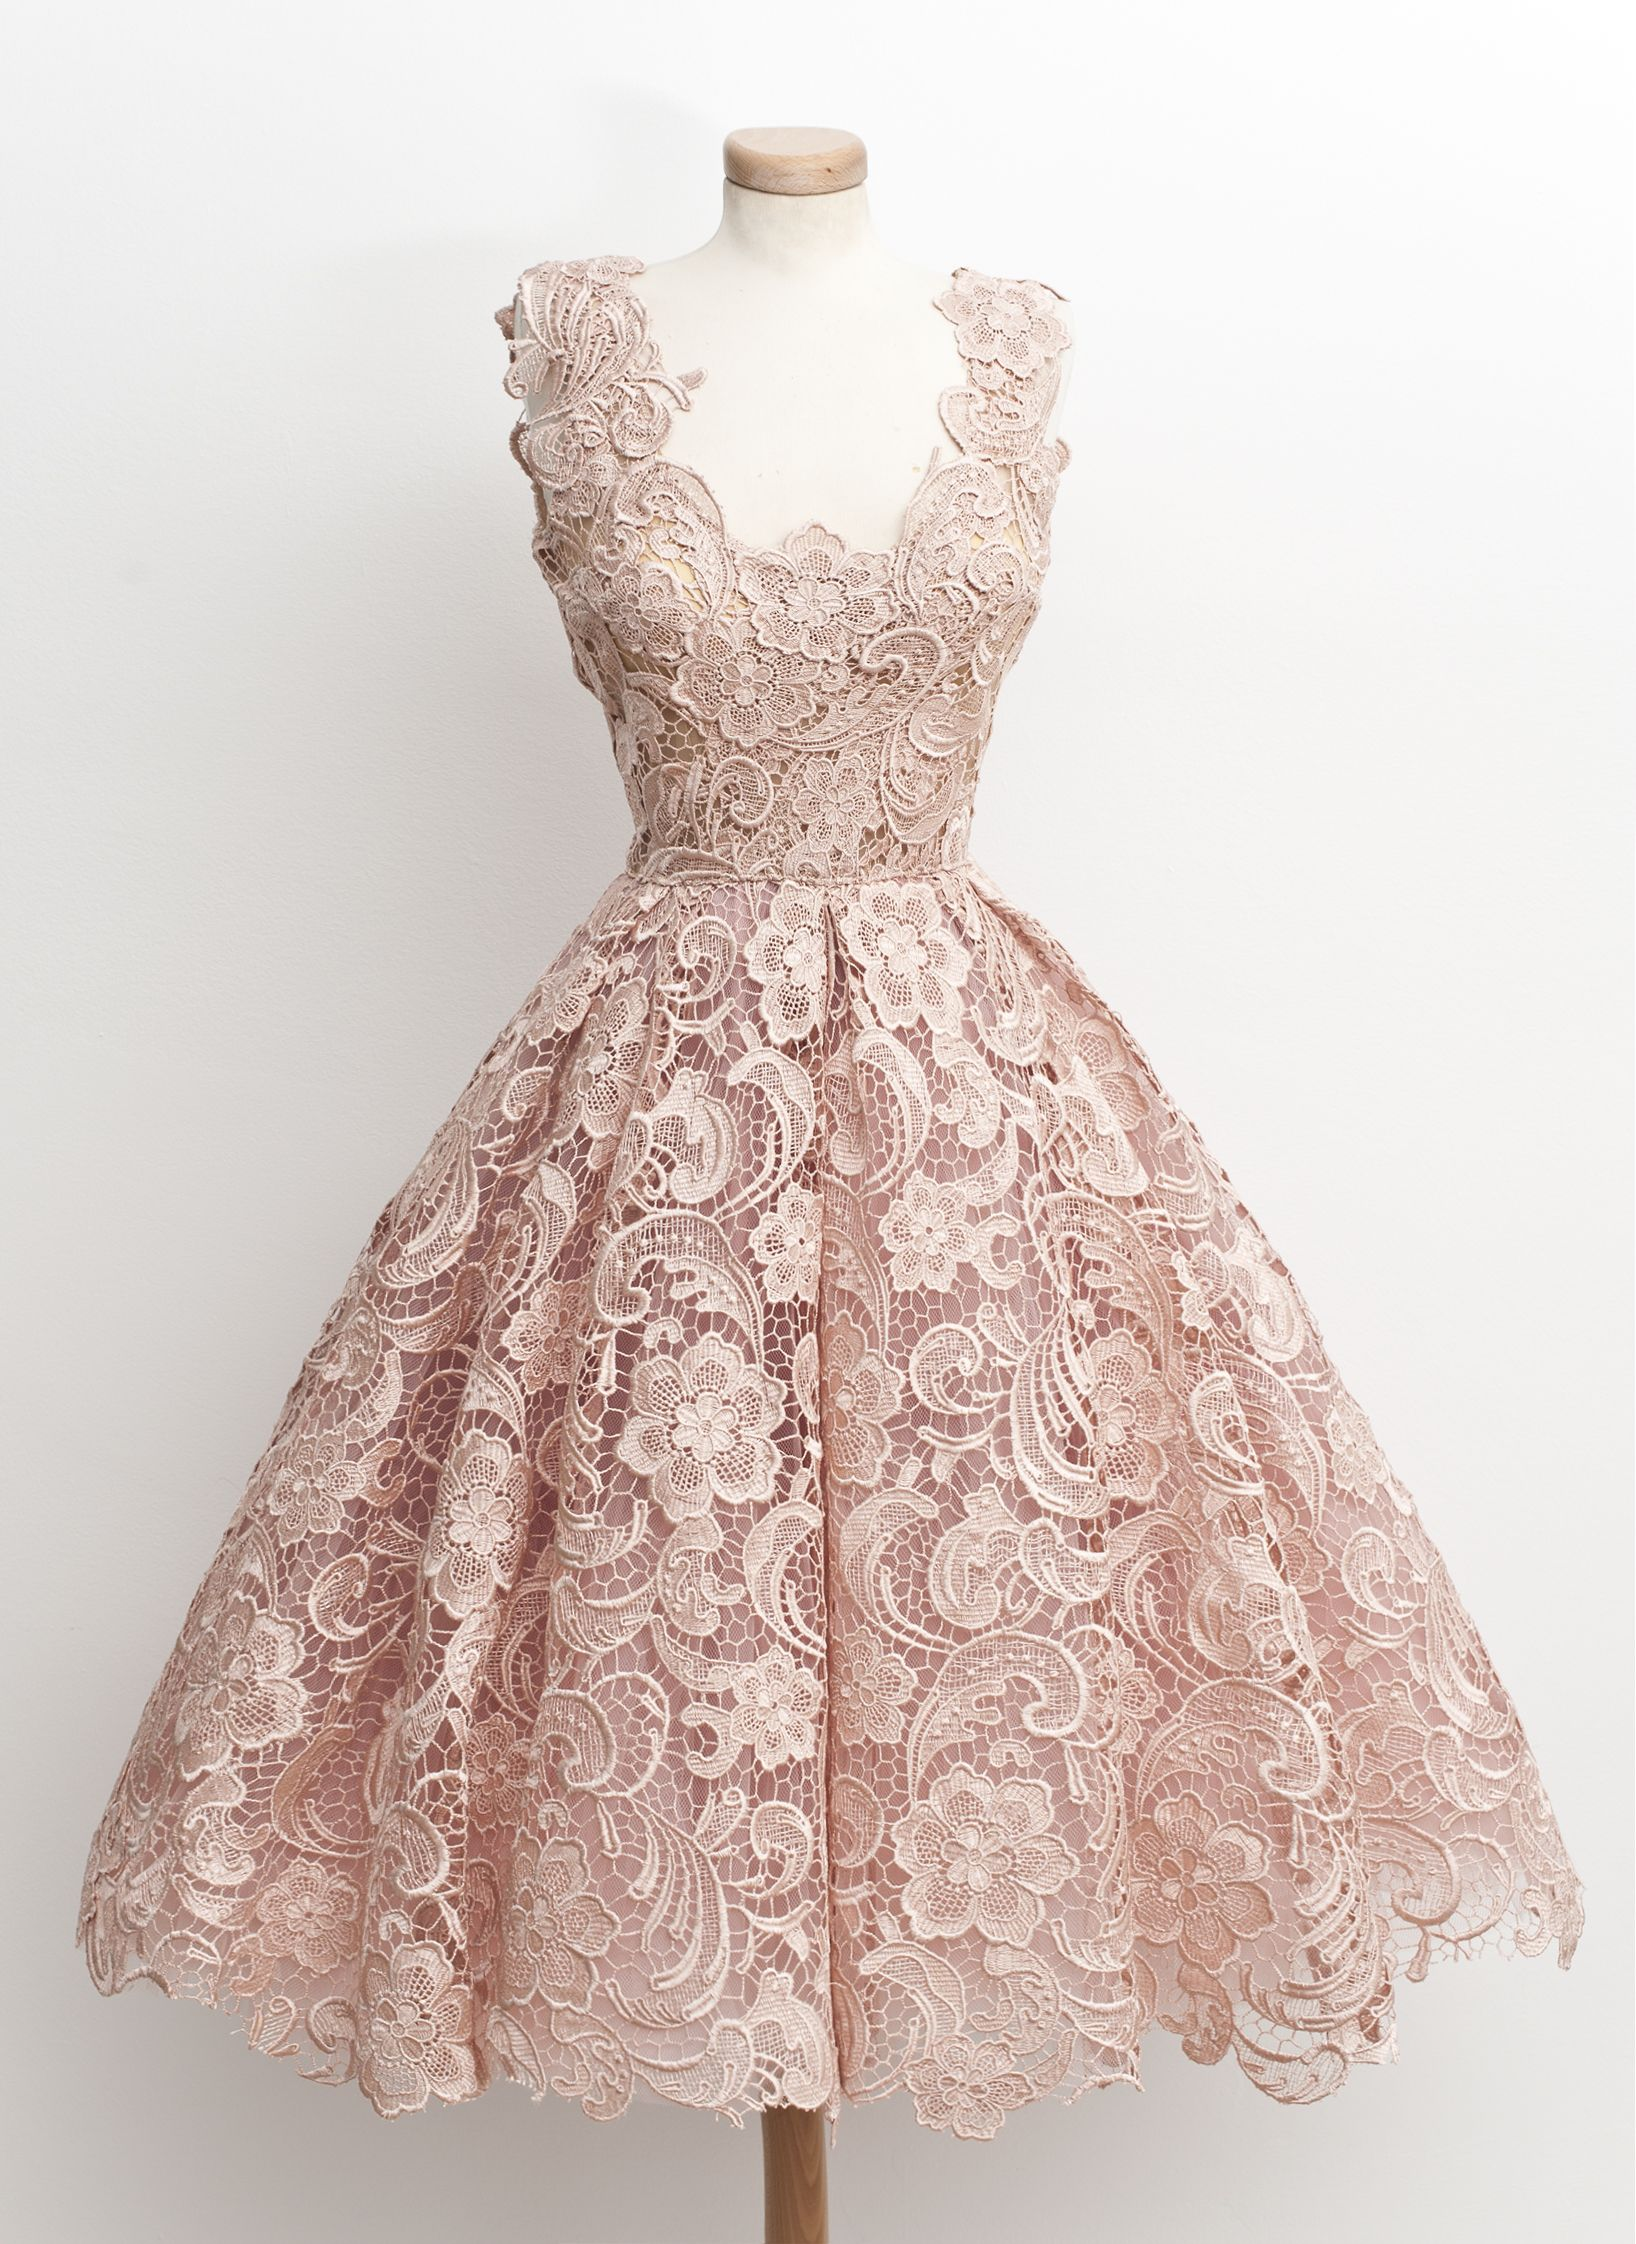 Powder pink bridesmaid dress  Take  tablespoons of powder pink embroidery and mix it with